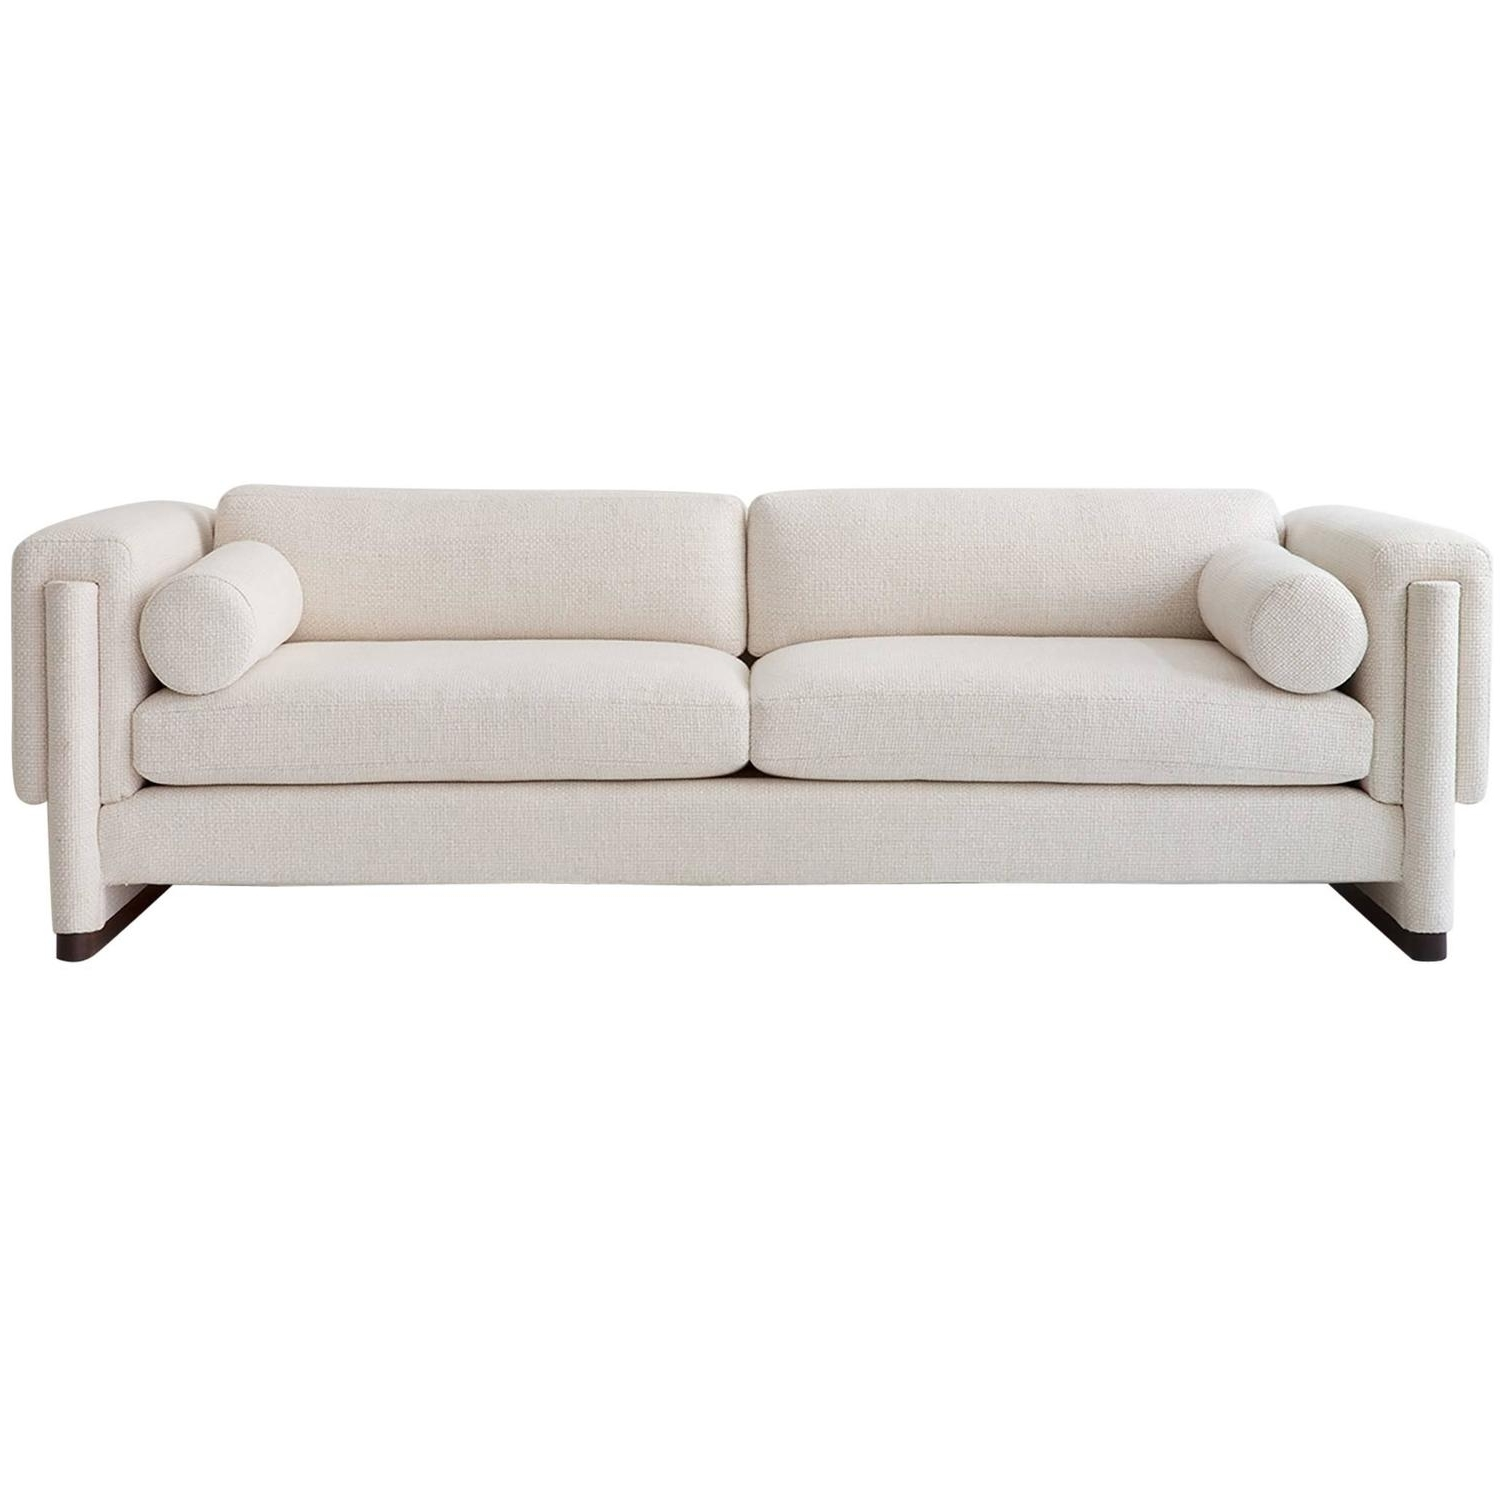 Art Deco Sofas – 130 For Sale At 1Stdibs Intended For Favorite Art Deco Sofas (View 6 of 20)